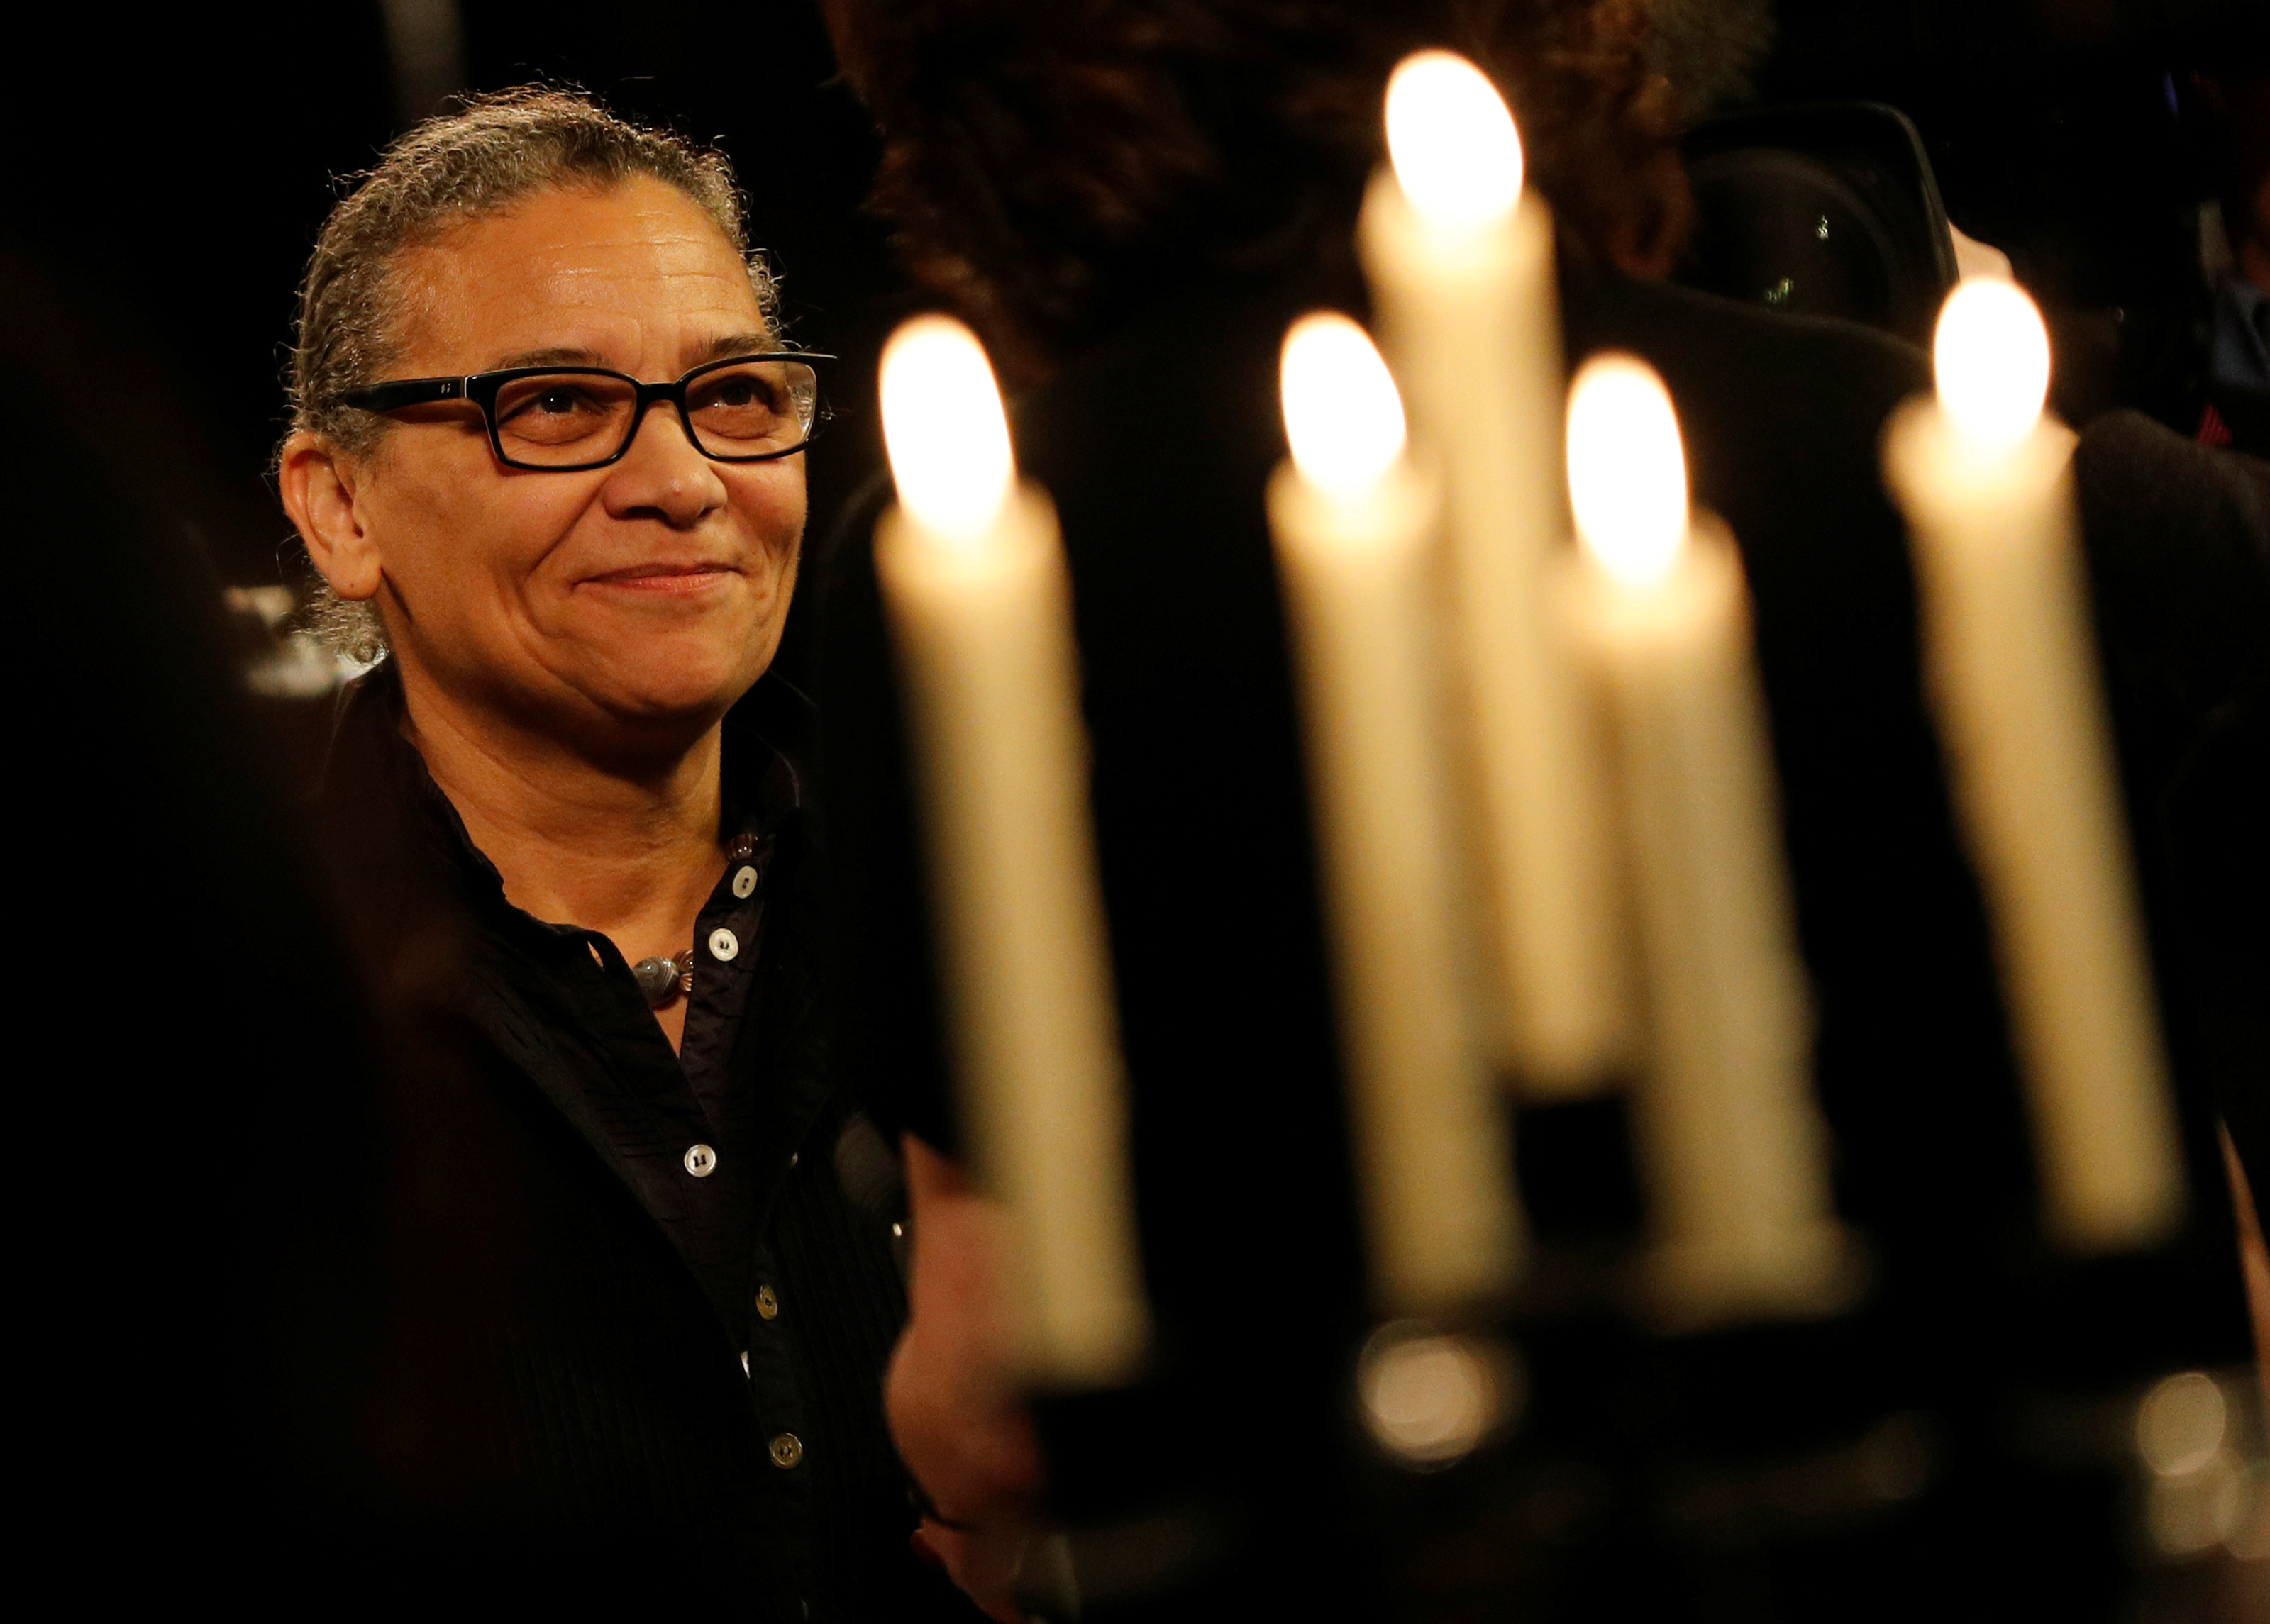 Turner Prize: Lubaina Himid wins, becoming first black woman awarded the prize